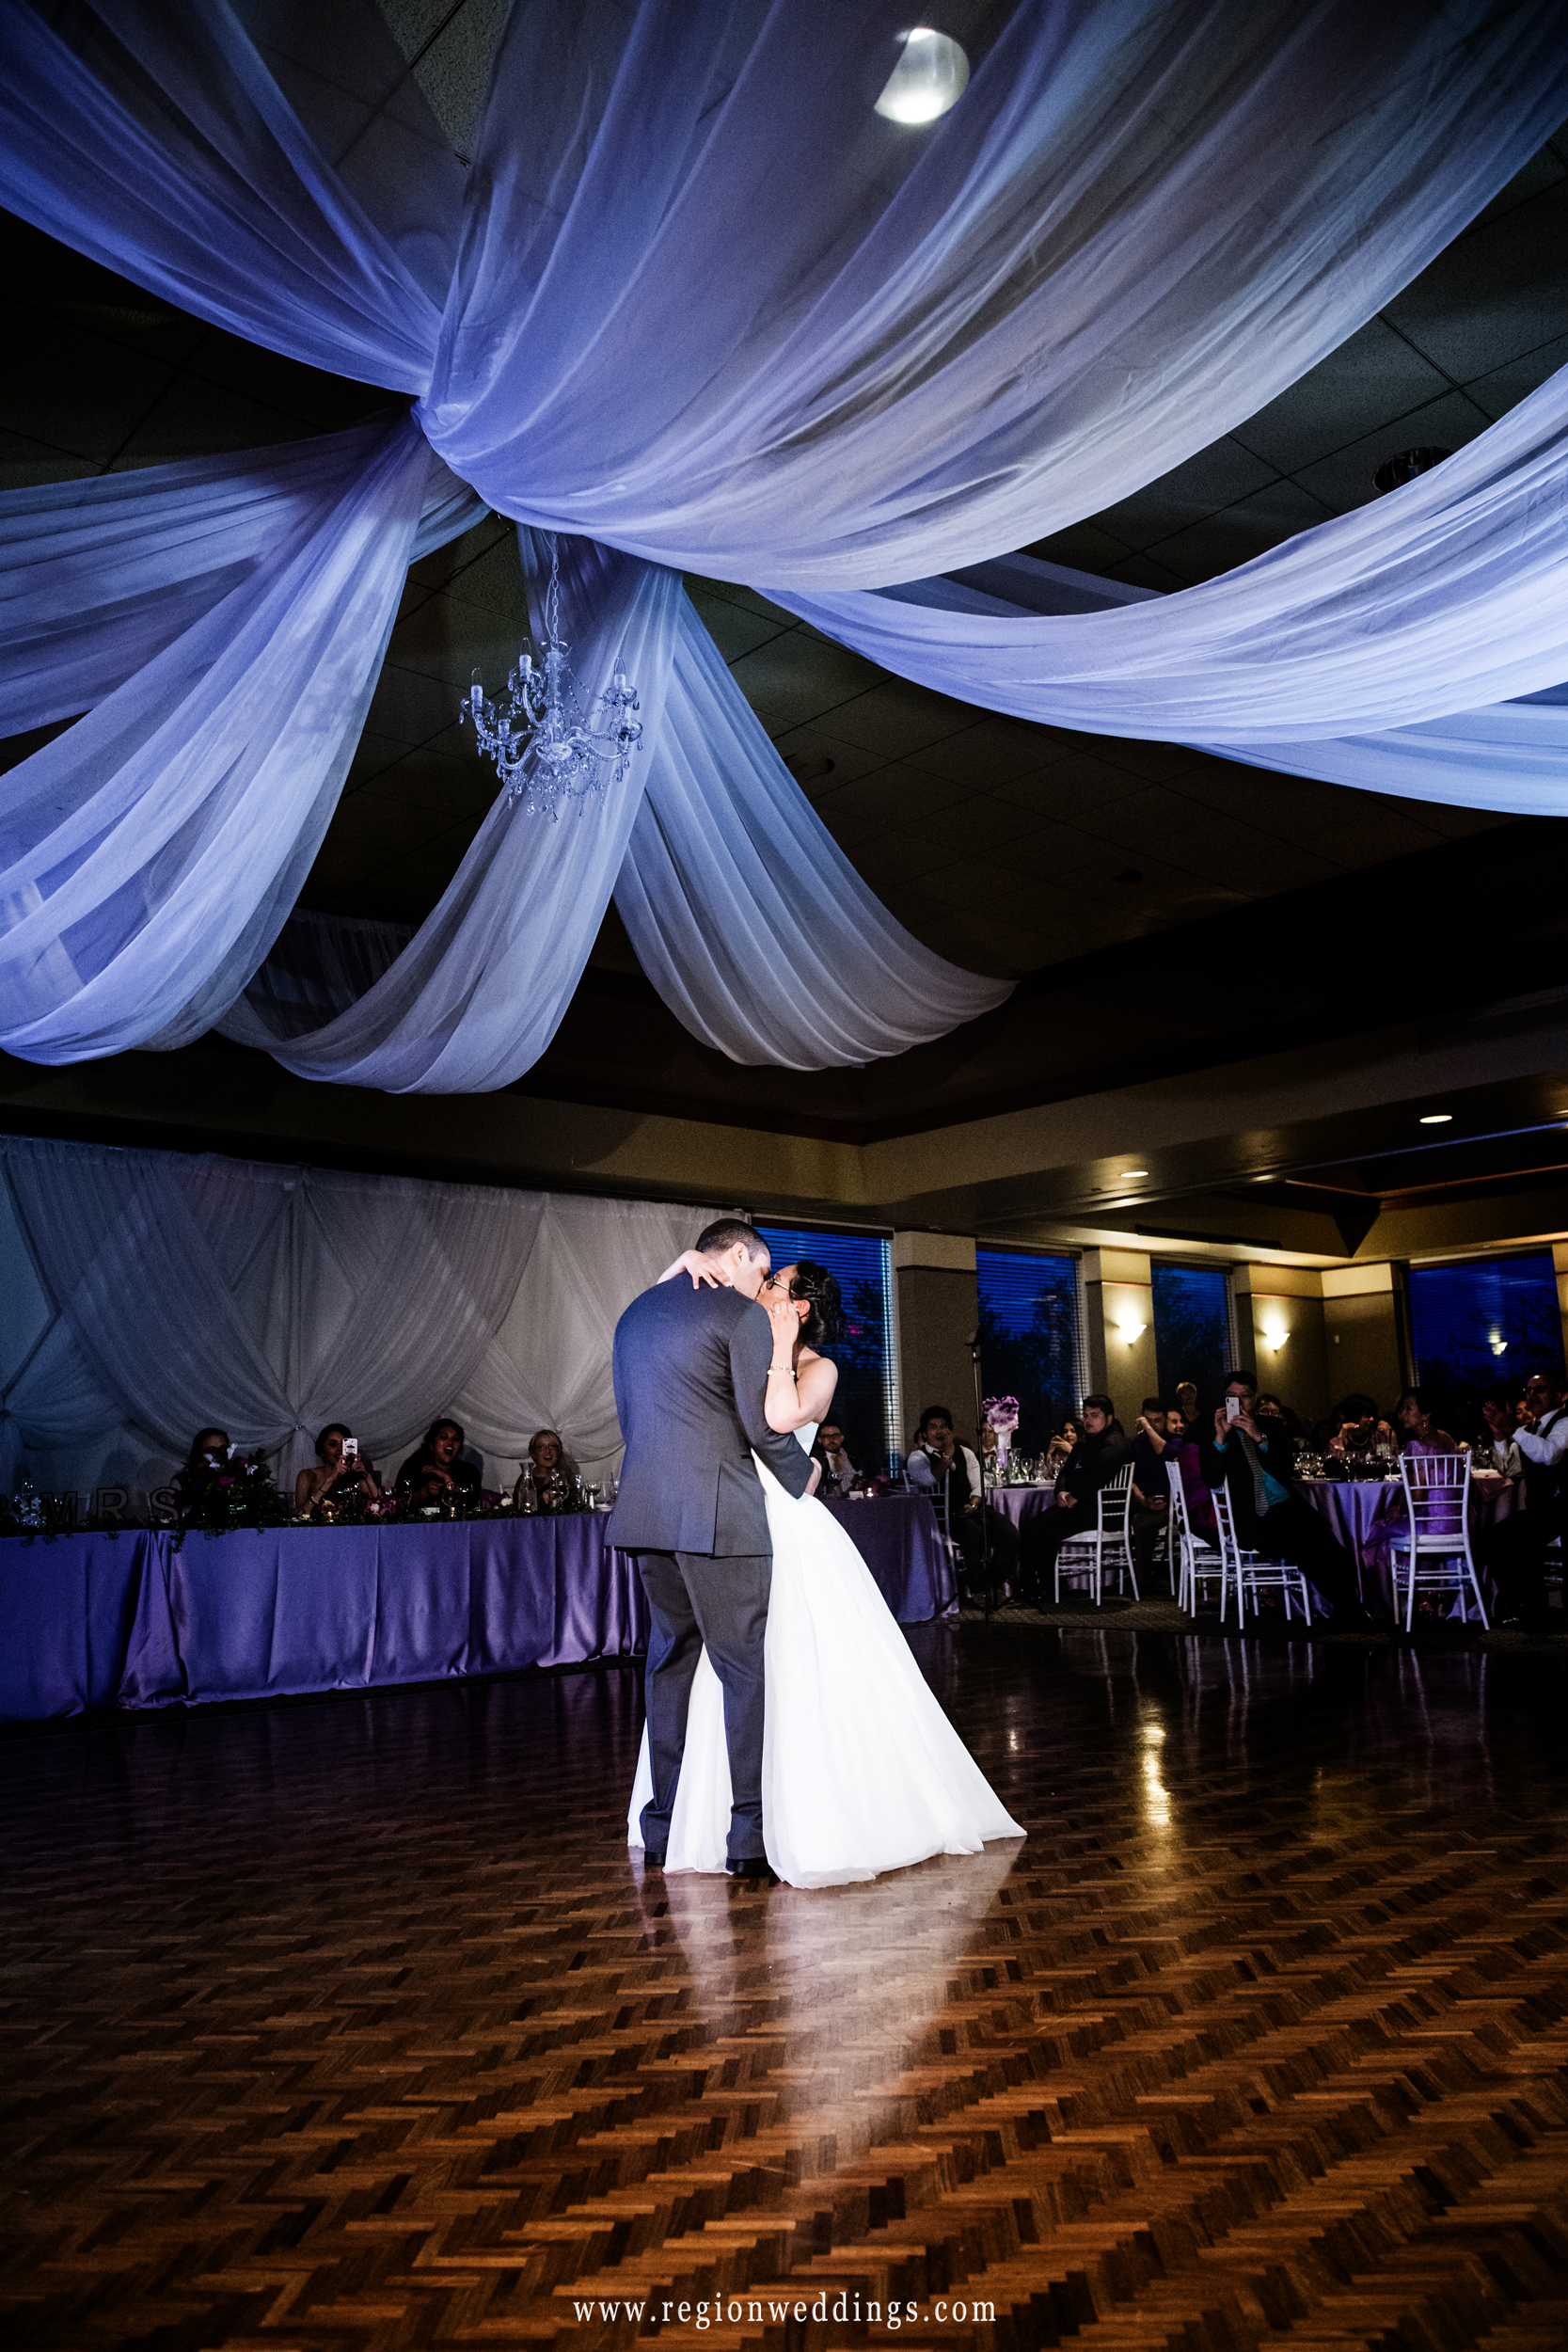 First dance in the reception room at Sand Creek.